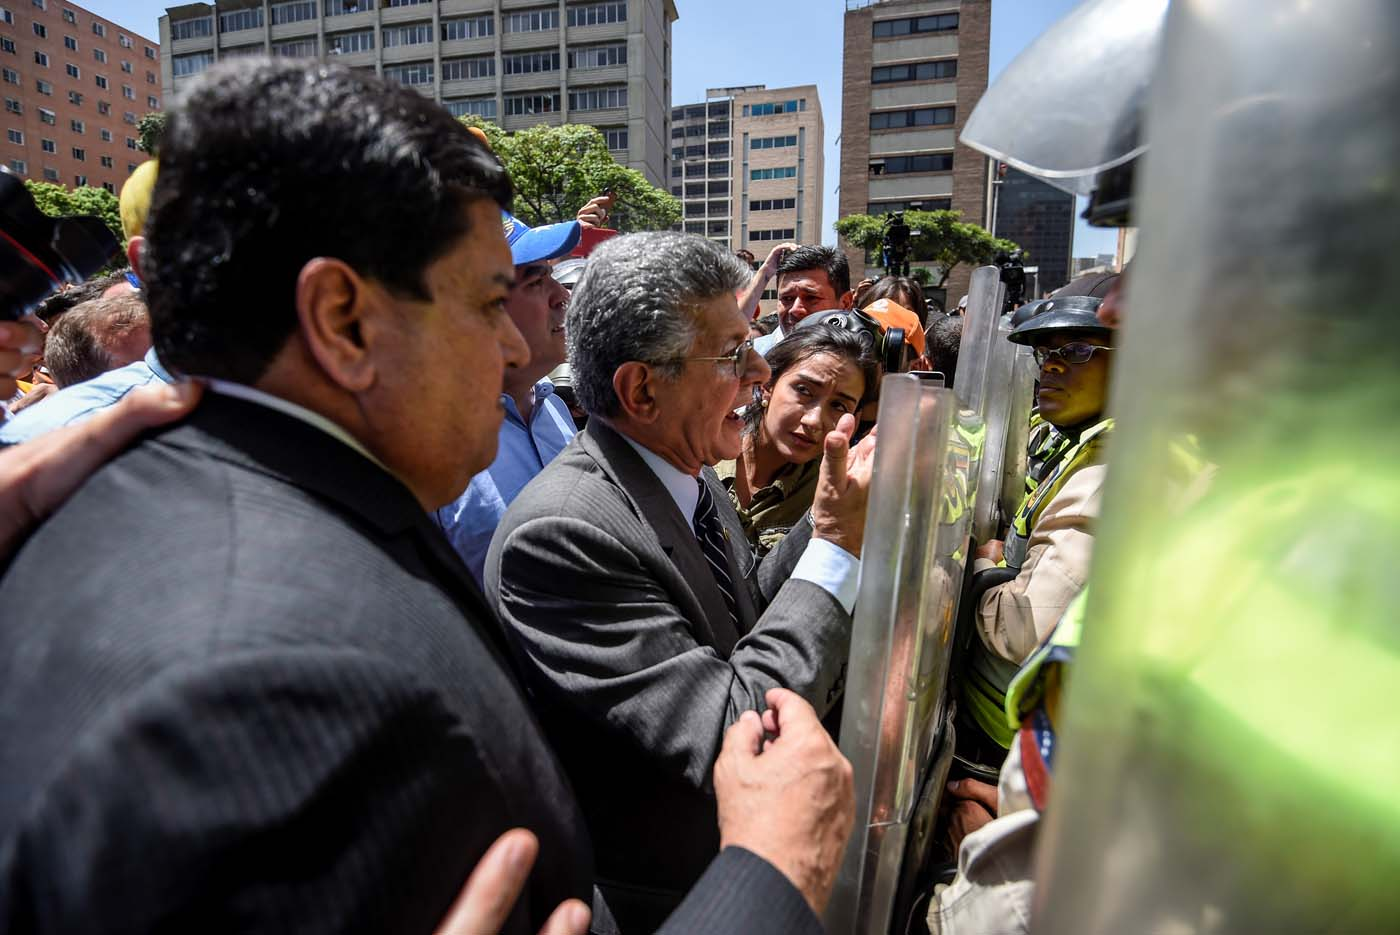 Former President of the Venezuelan National Assembly Henry Ramos Allup(C) speaks with riot police officers during a protest against Nicolas Maduro's government in Caracas on April 4, 2017. Protesters clashed with police in Venezuela Tuesday as the opposition mobilized against moves to tighten President Nicolas Maduro's grip on power. Protesters hurled stones at riot police who fired tear gas as they blocked the demonstrators from advancing through central Caracas, where pro-government activists were also planning to march. / AFP PHOTO / JUAN BARRETO